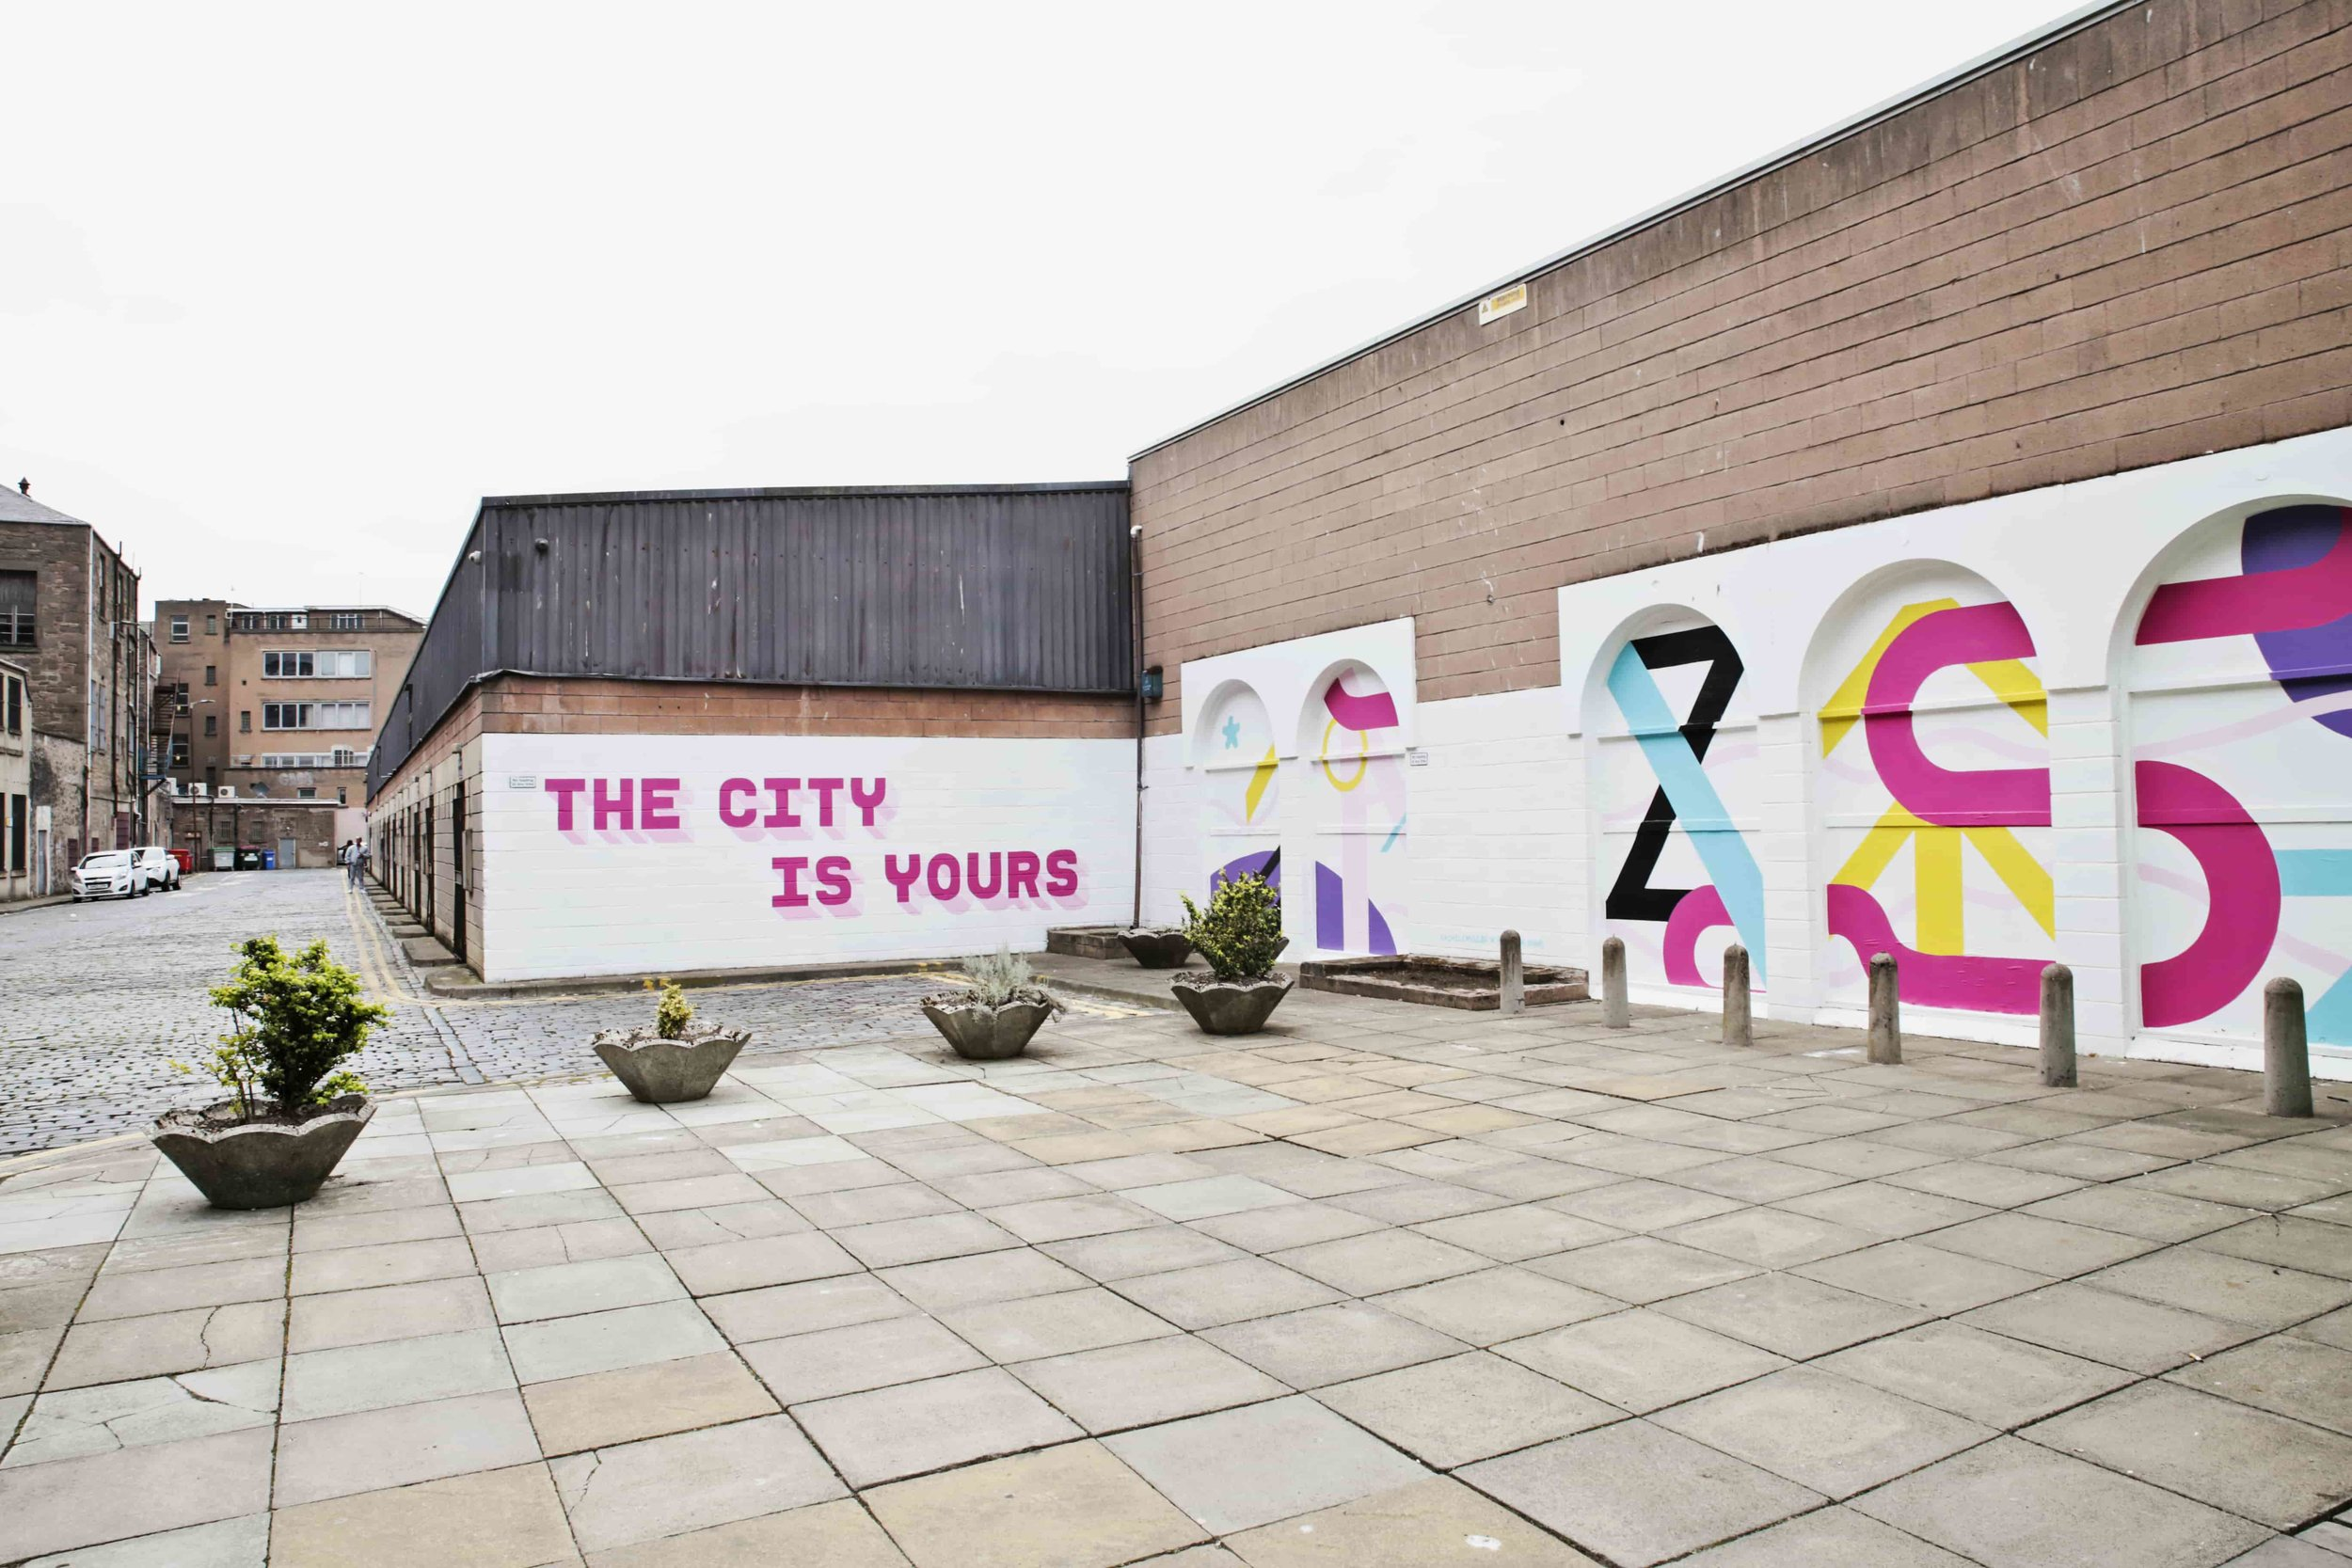 Keiller Centre Mural. The City Is Yours!